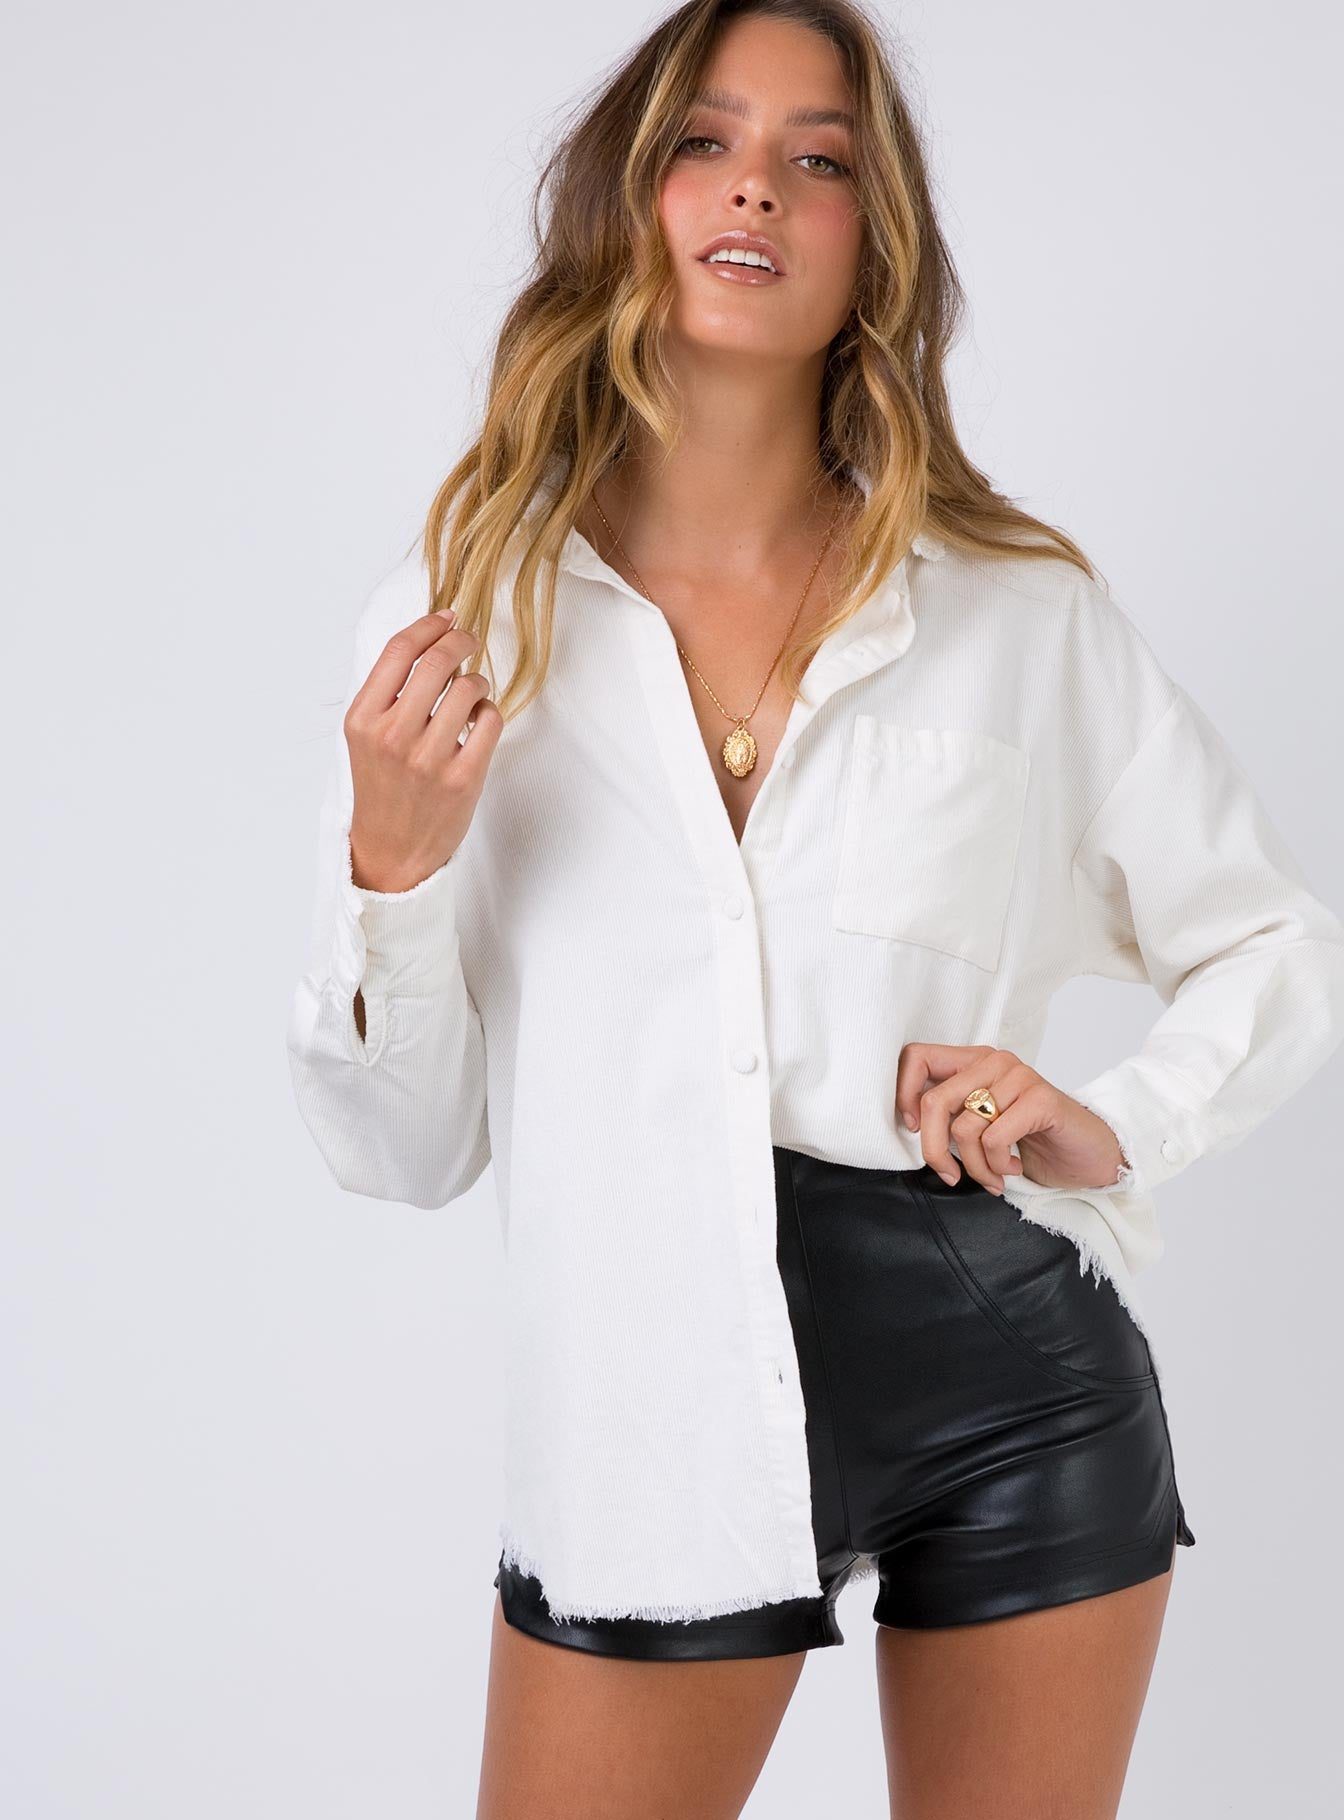 Macie Jones Top White